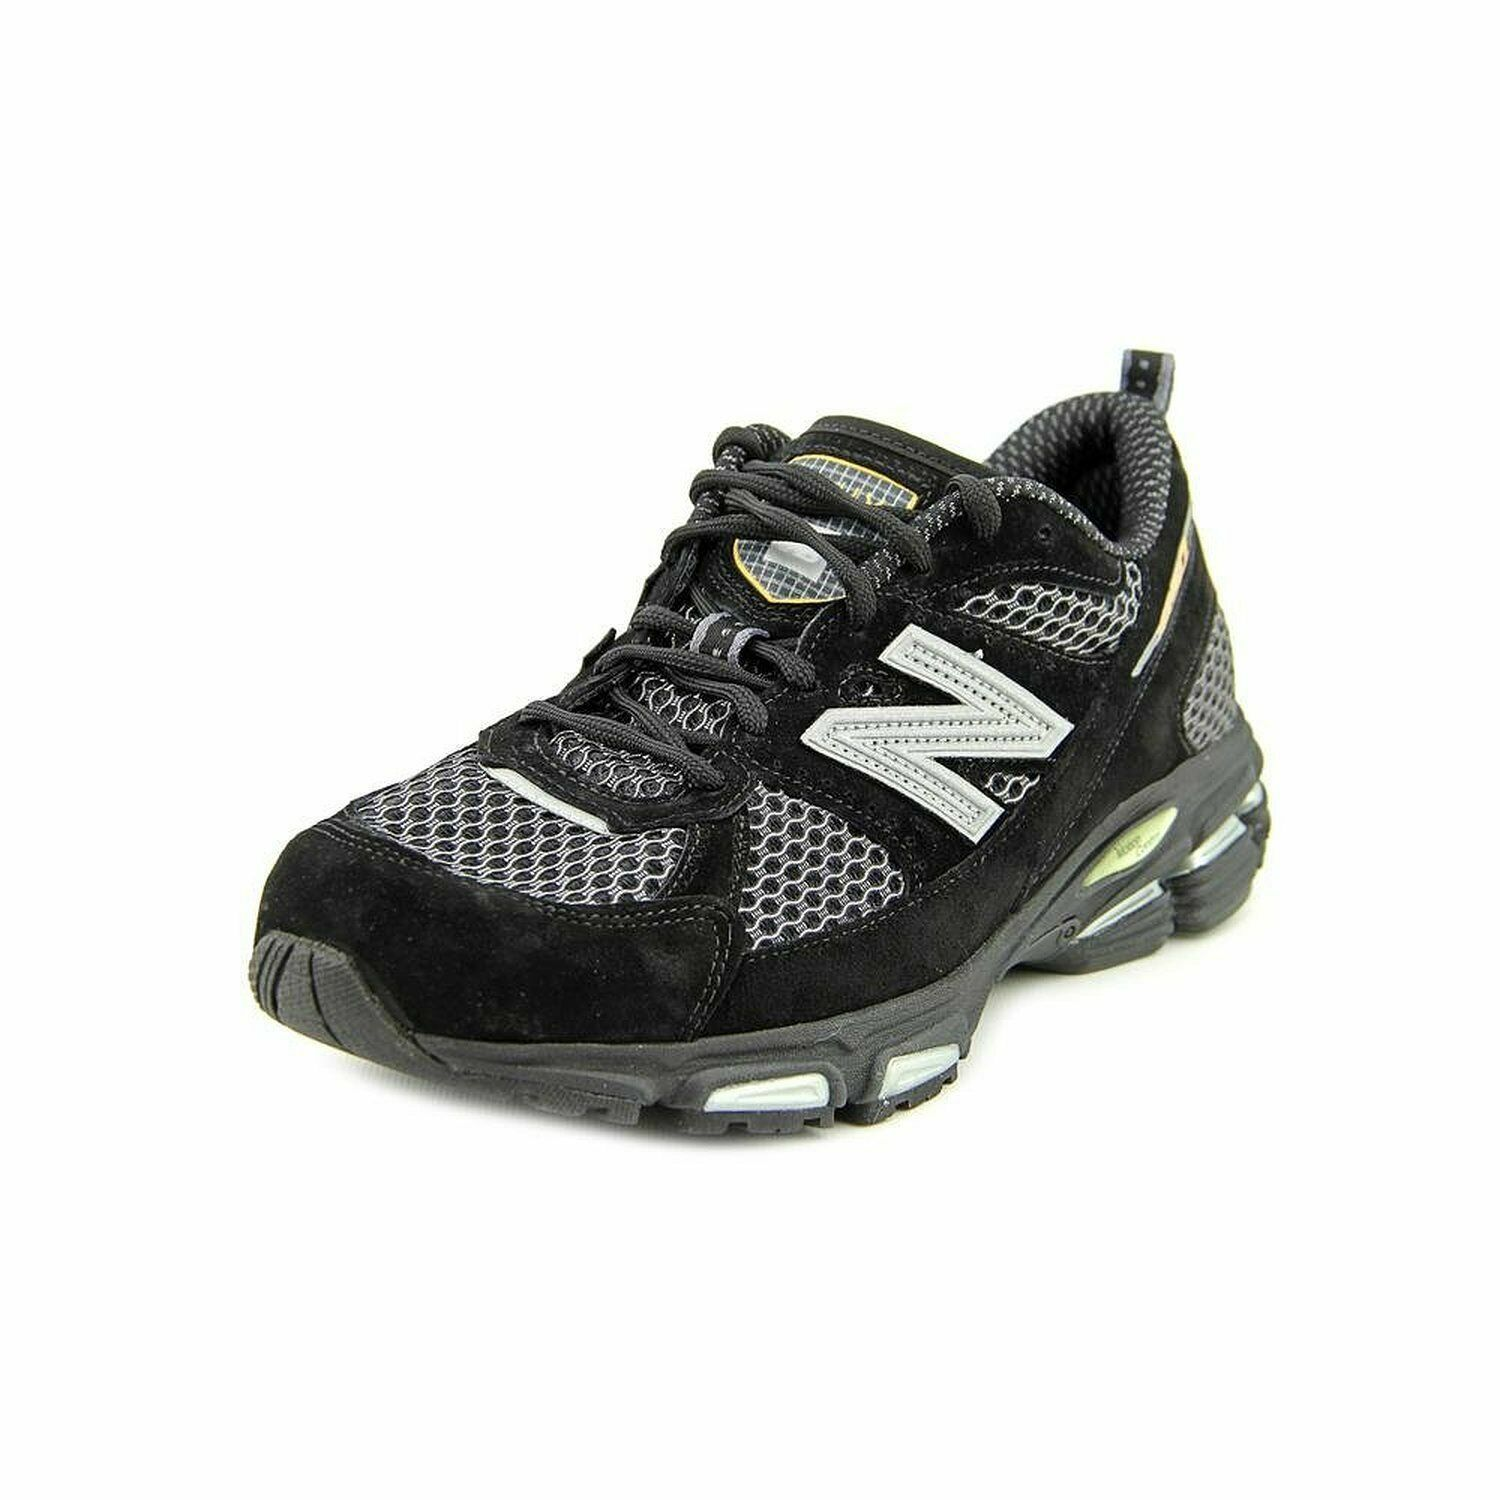 New Balance MR950 Mens Wide Mesh Running shoes